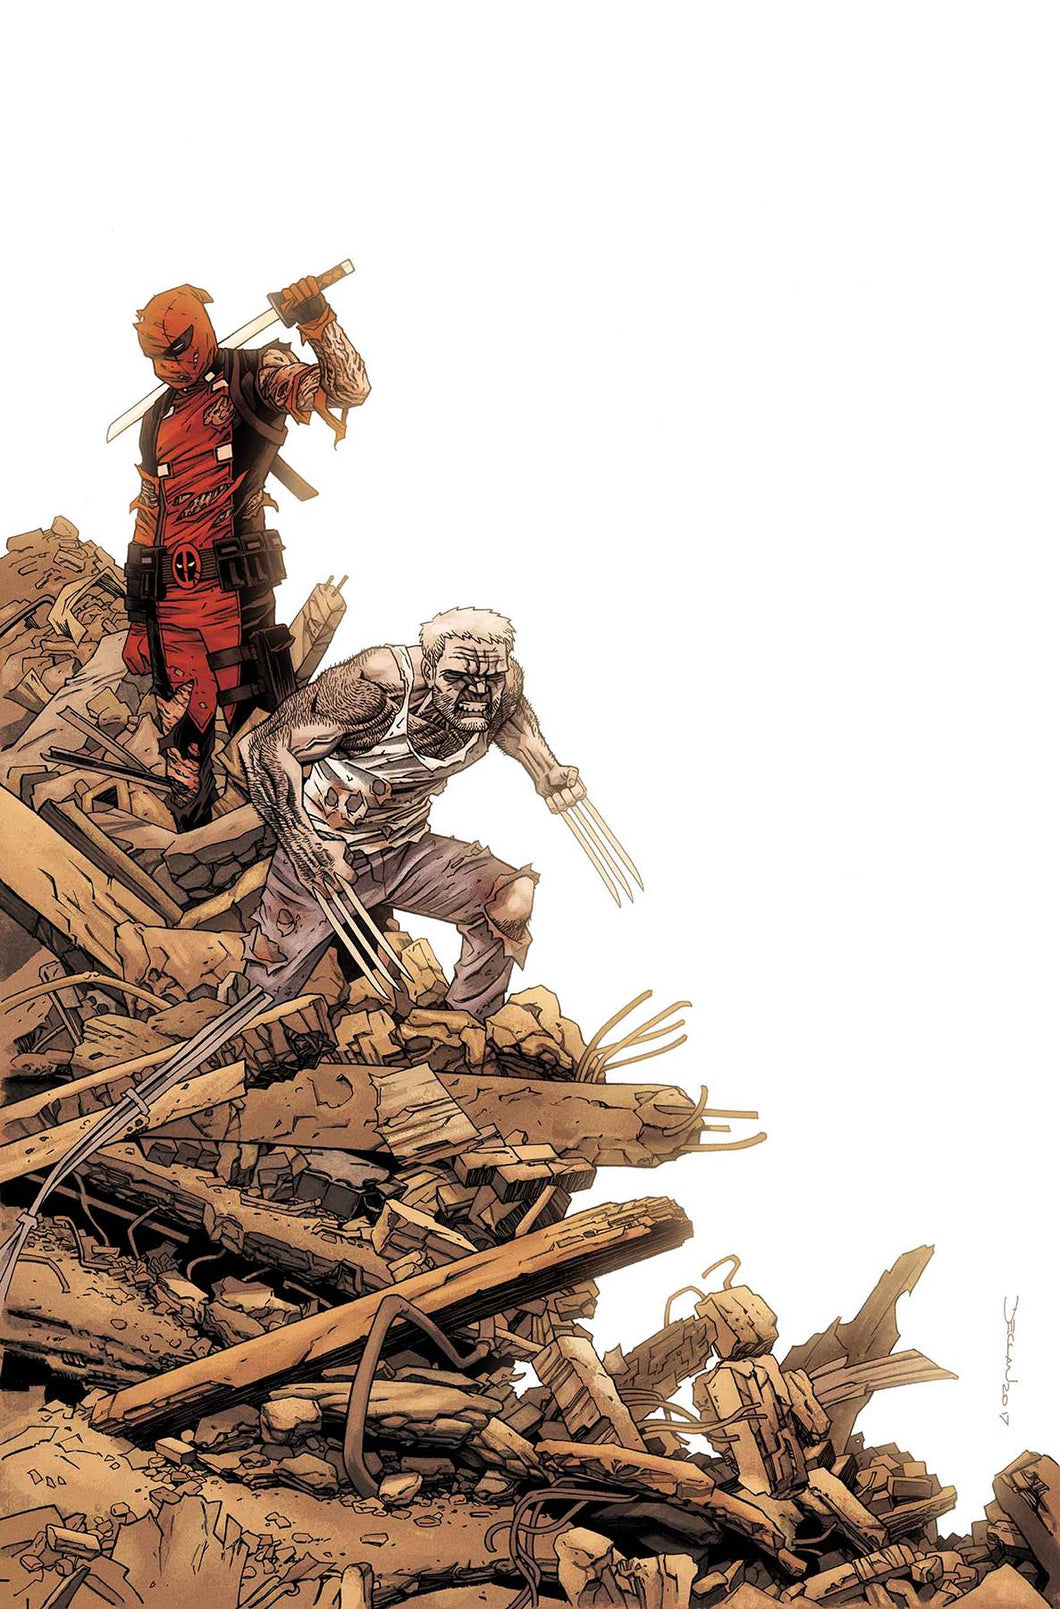 DEADPOOL VS OLD MAN LOGAN #5 (OF 5) 02/21/18 RD